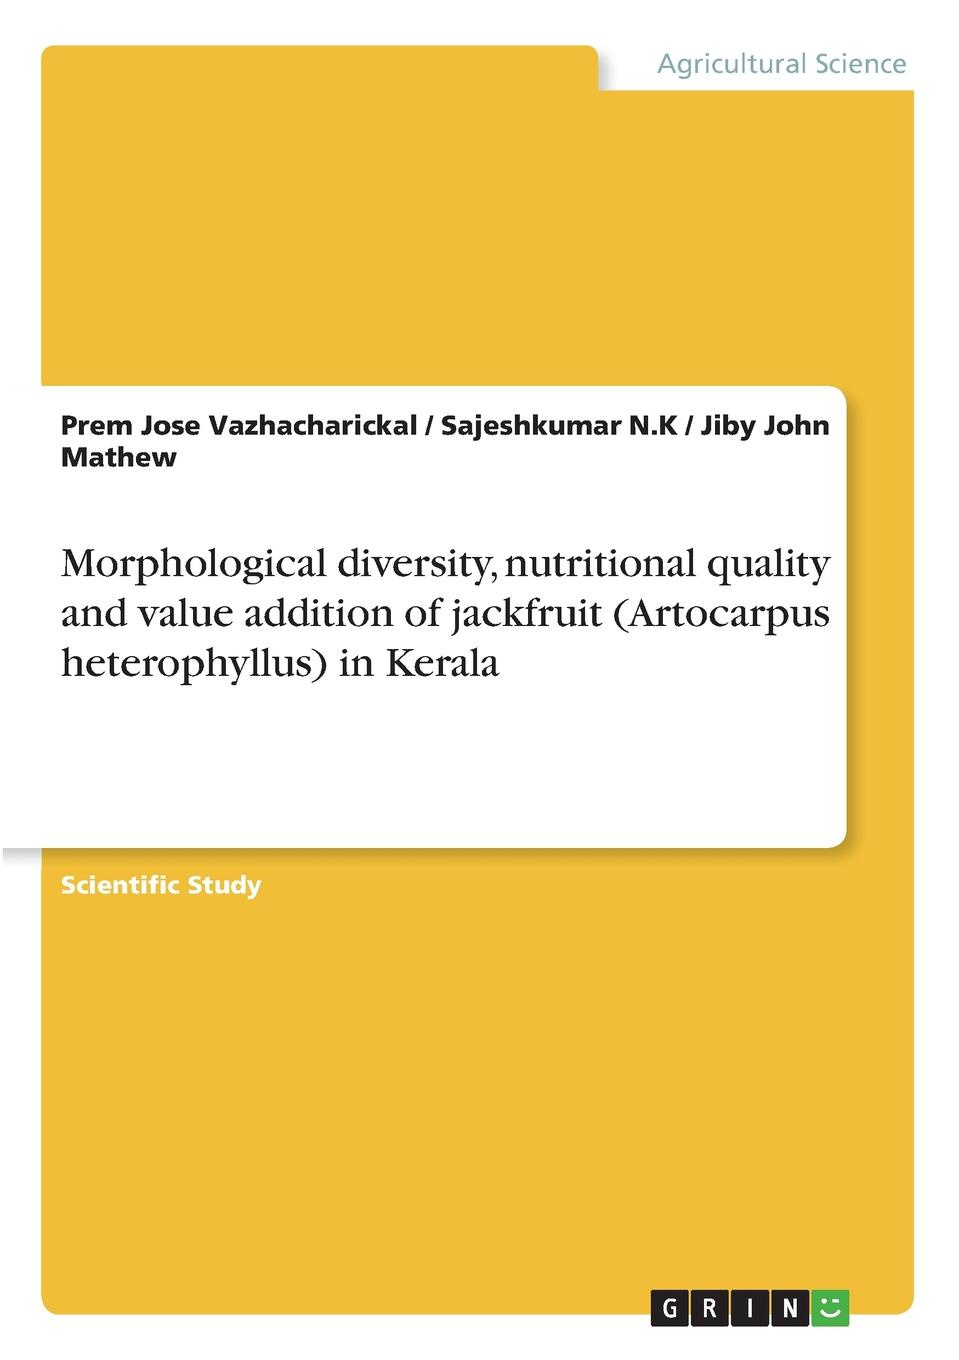 Jiby John Mathew, Prem Jose Vazhacharickal, Sajeshkumar N.K Morphological diversity, nutritional quality and value addition of jackfruit (Artocarpus heterophyllus) in Kerala jiby john mathew prem jose vazhacharickal sajeshkumar n k the honey apple and its phytochemical analysis